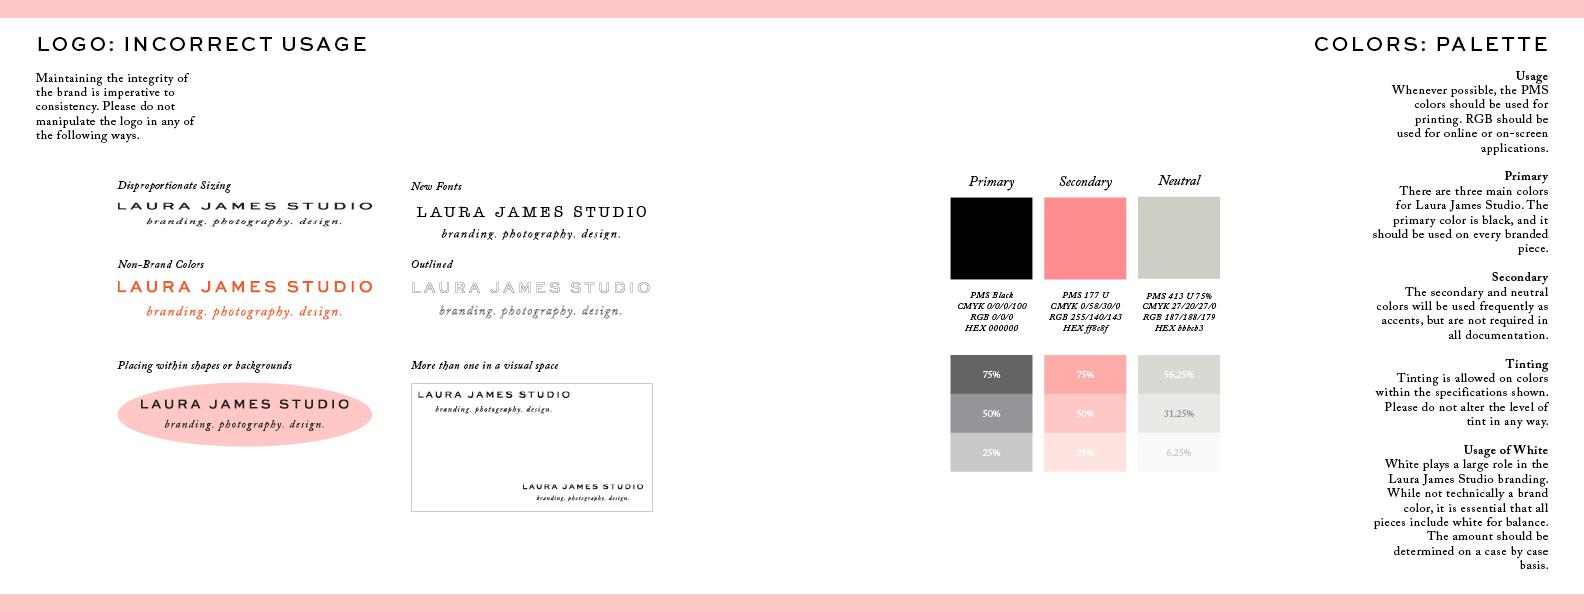 Laura James Studio Brand guide - image 8 - student project